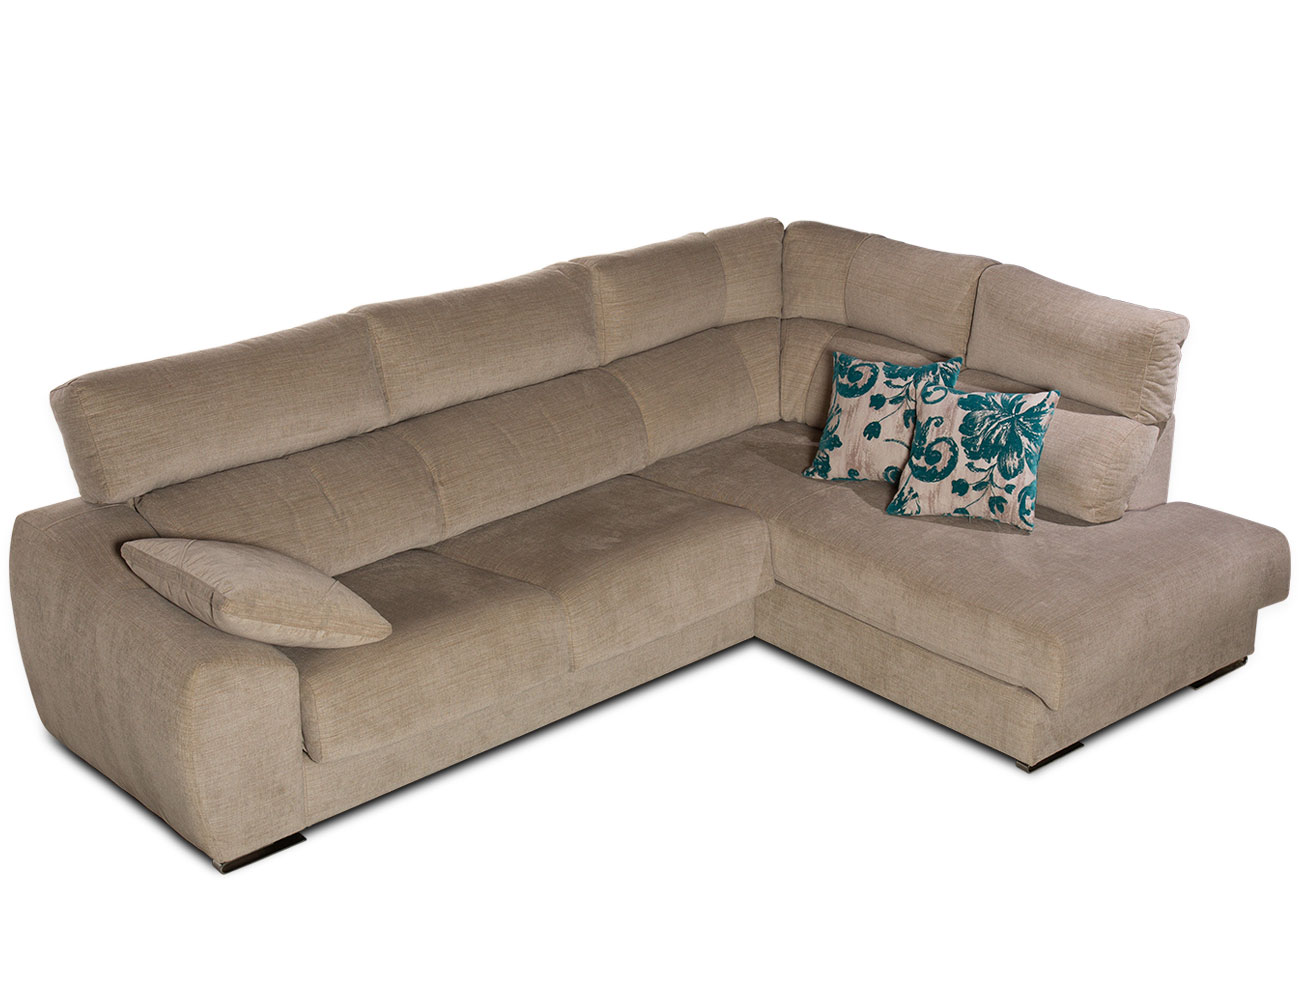 Sofa chaiselongue rincon moderno1